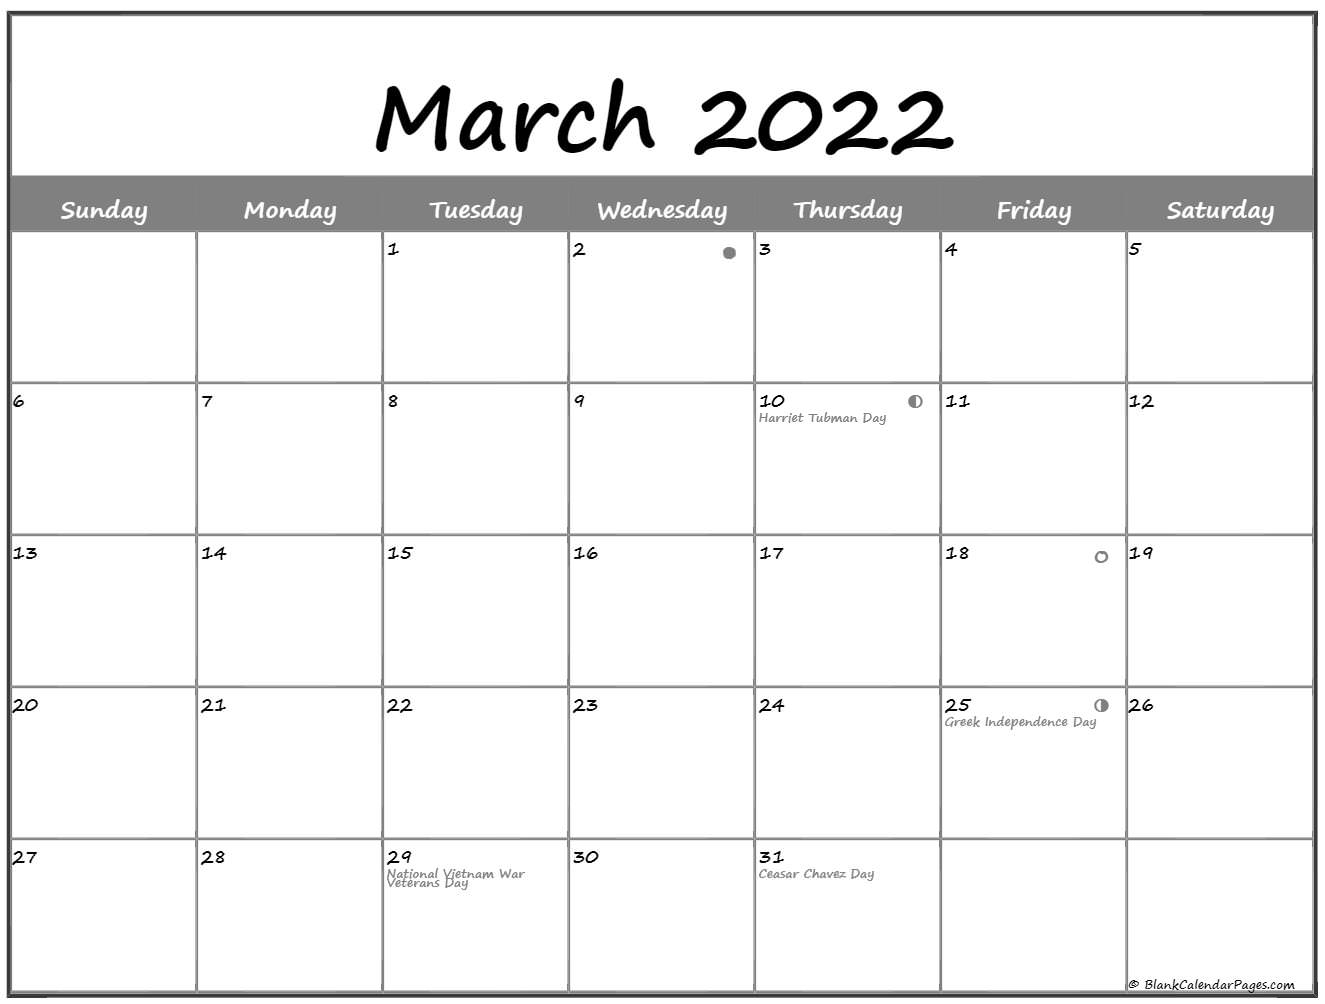 March 2022 Lunar Calendar | Moon Phase Calendar Within March And April 2022 Calendar Pages